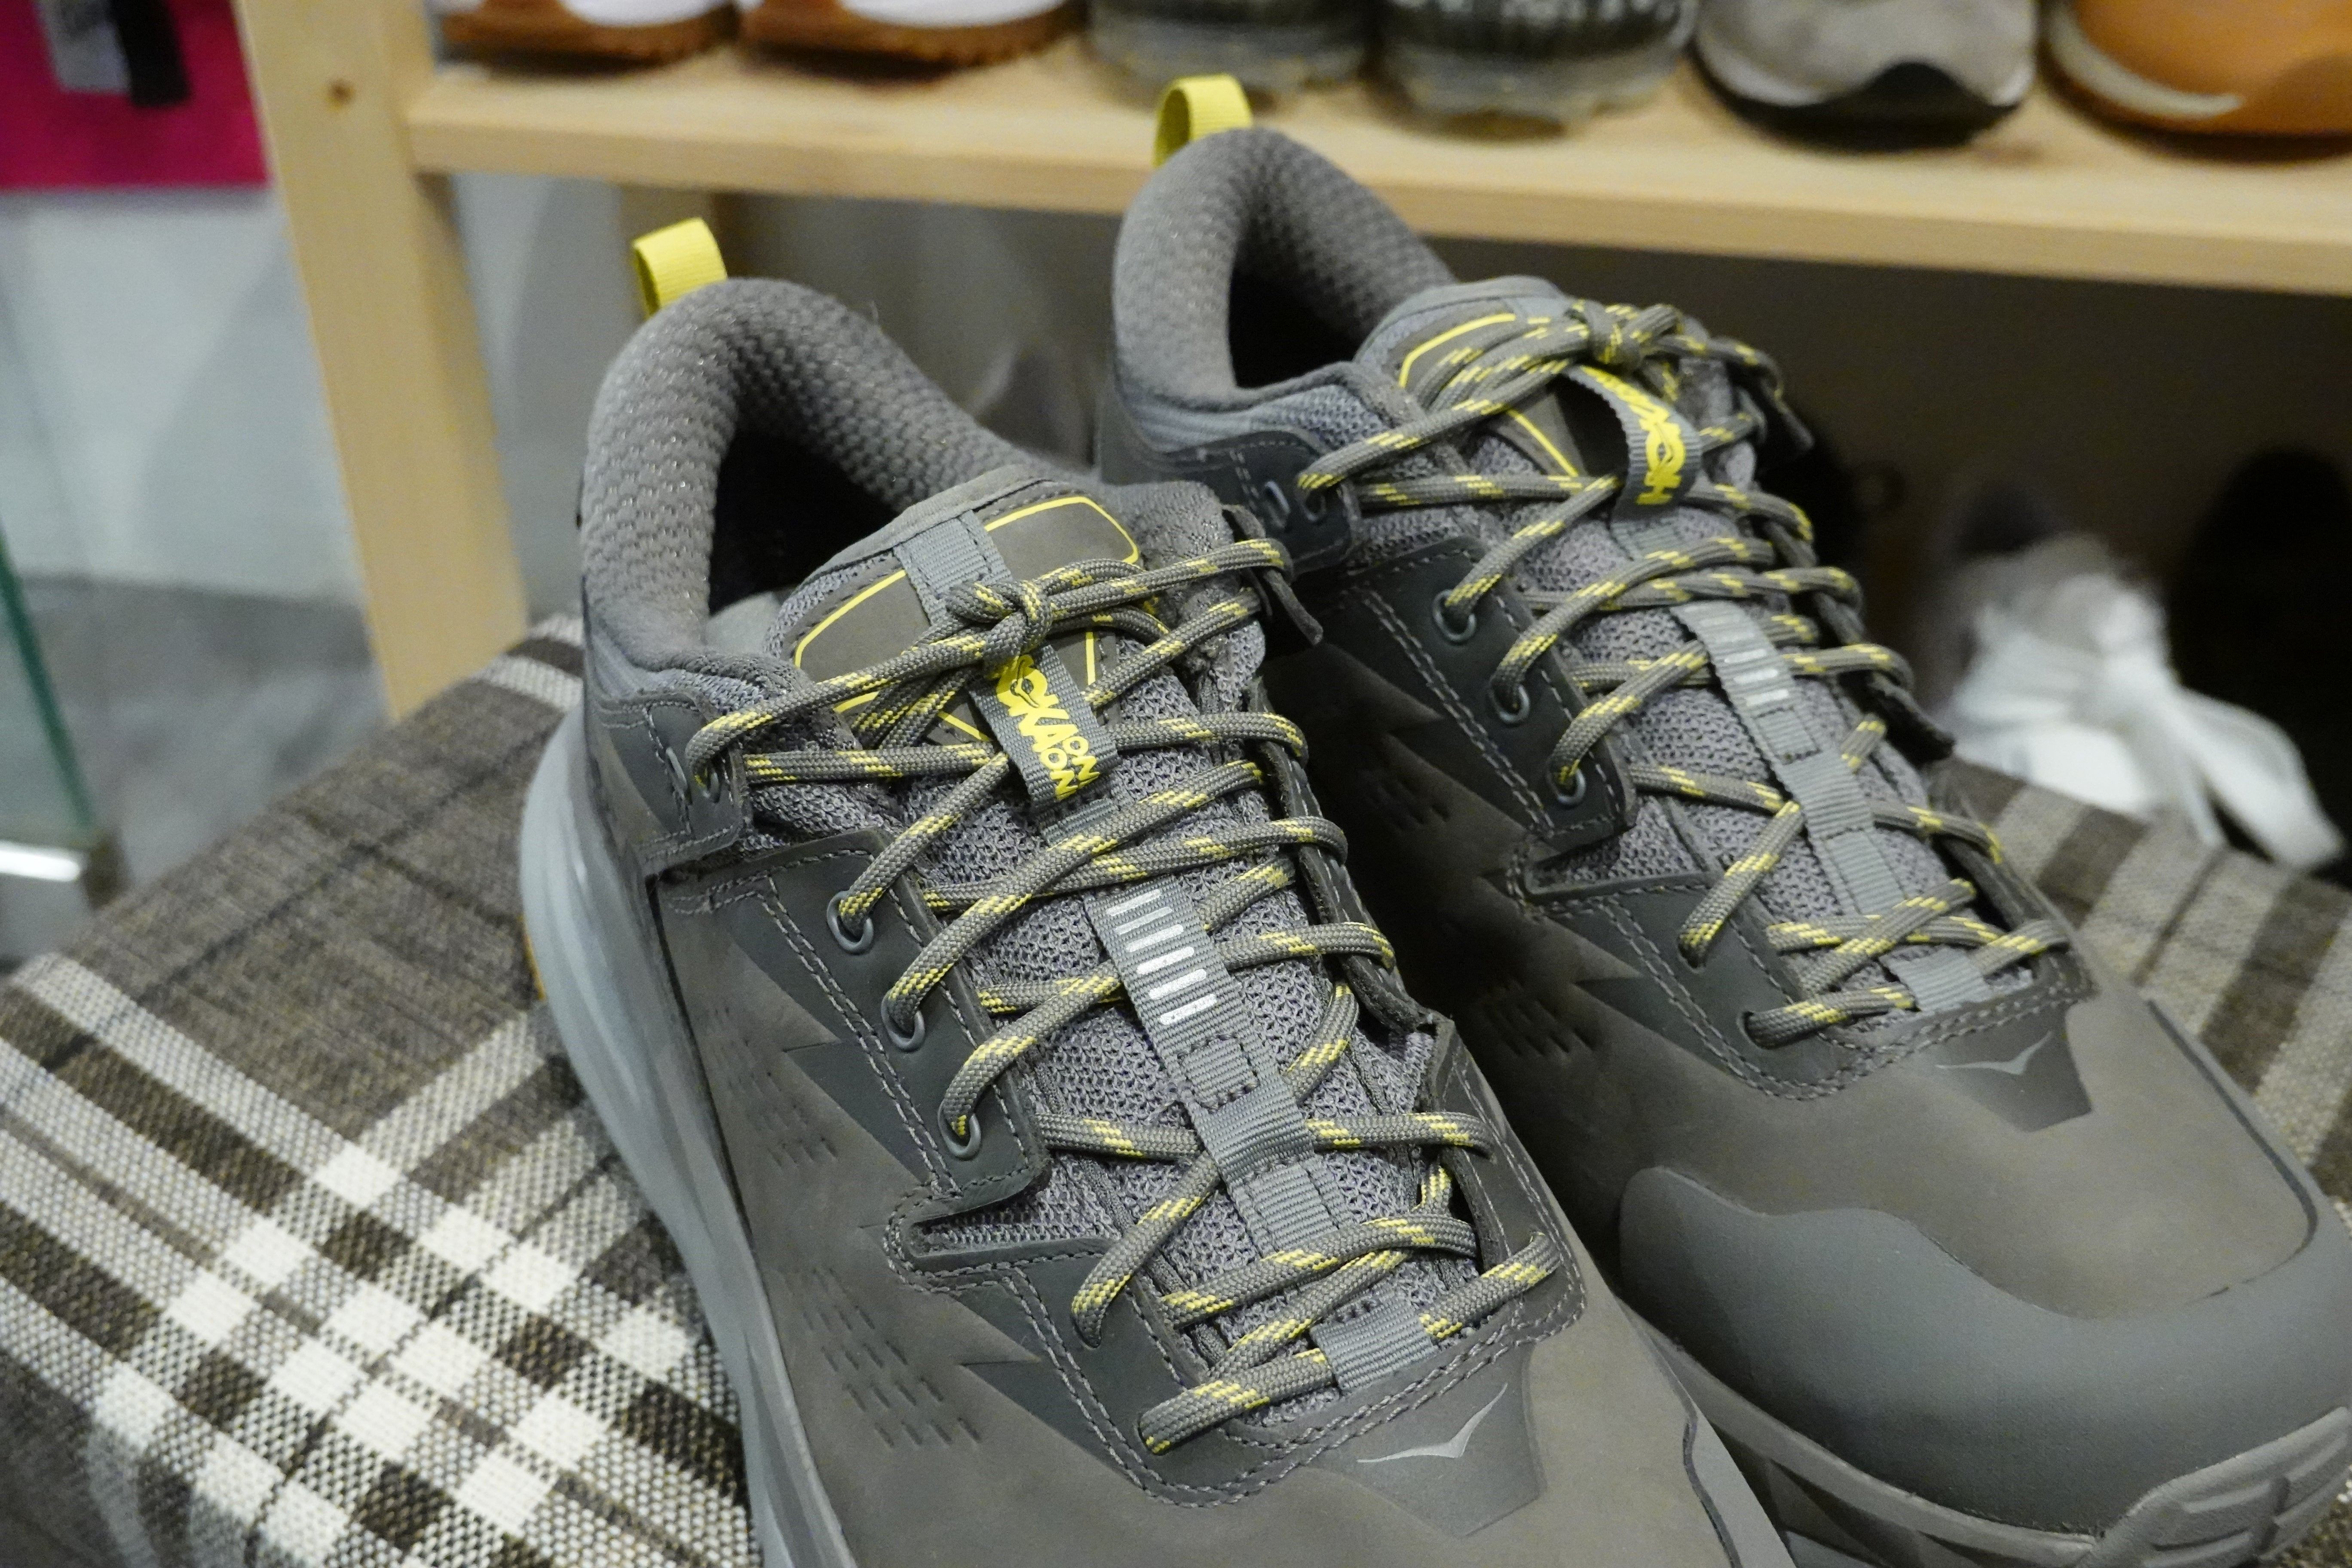 Hoka One One Kaha Low GoreTex - Charcoal Gray/Green Sheen #1118586-CGGS-Preorder Item-Navy Selected Shop